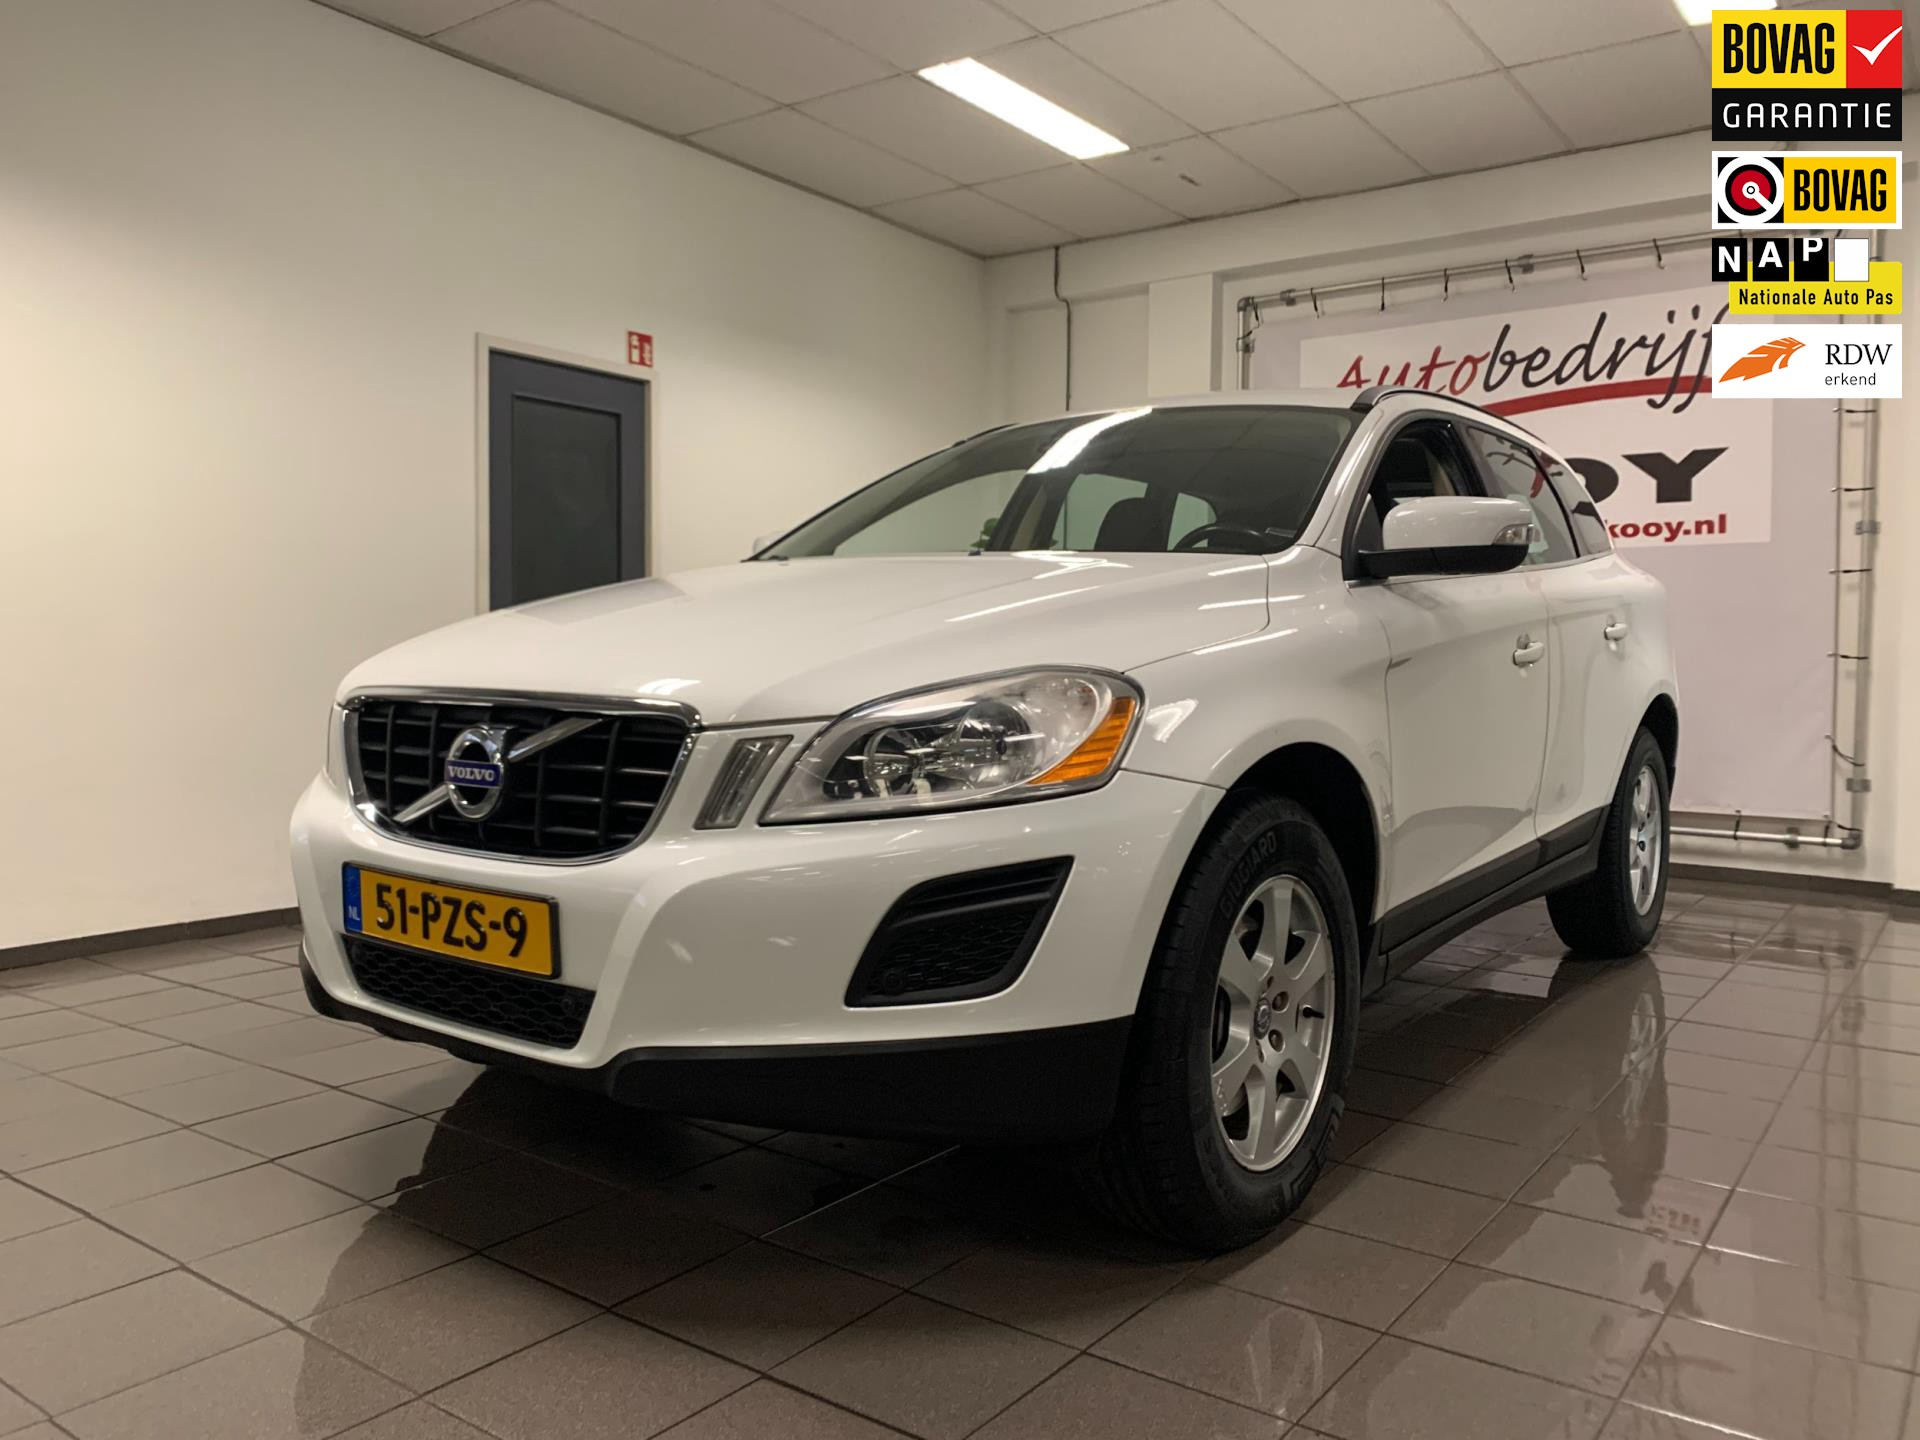 Volvo XC60 2.0T Momentum Automaat * Leder / Afn. Trekhaak / Cruise control *